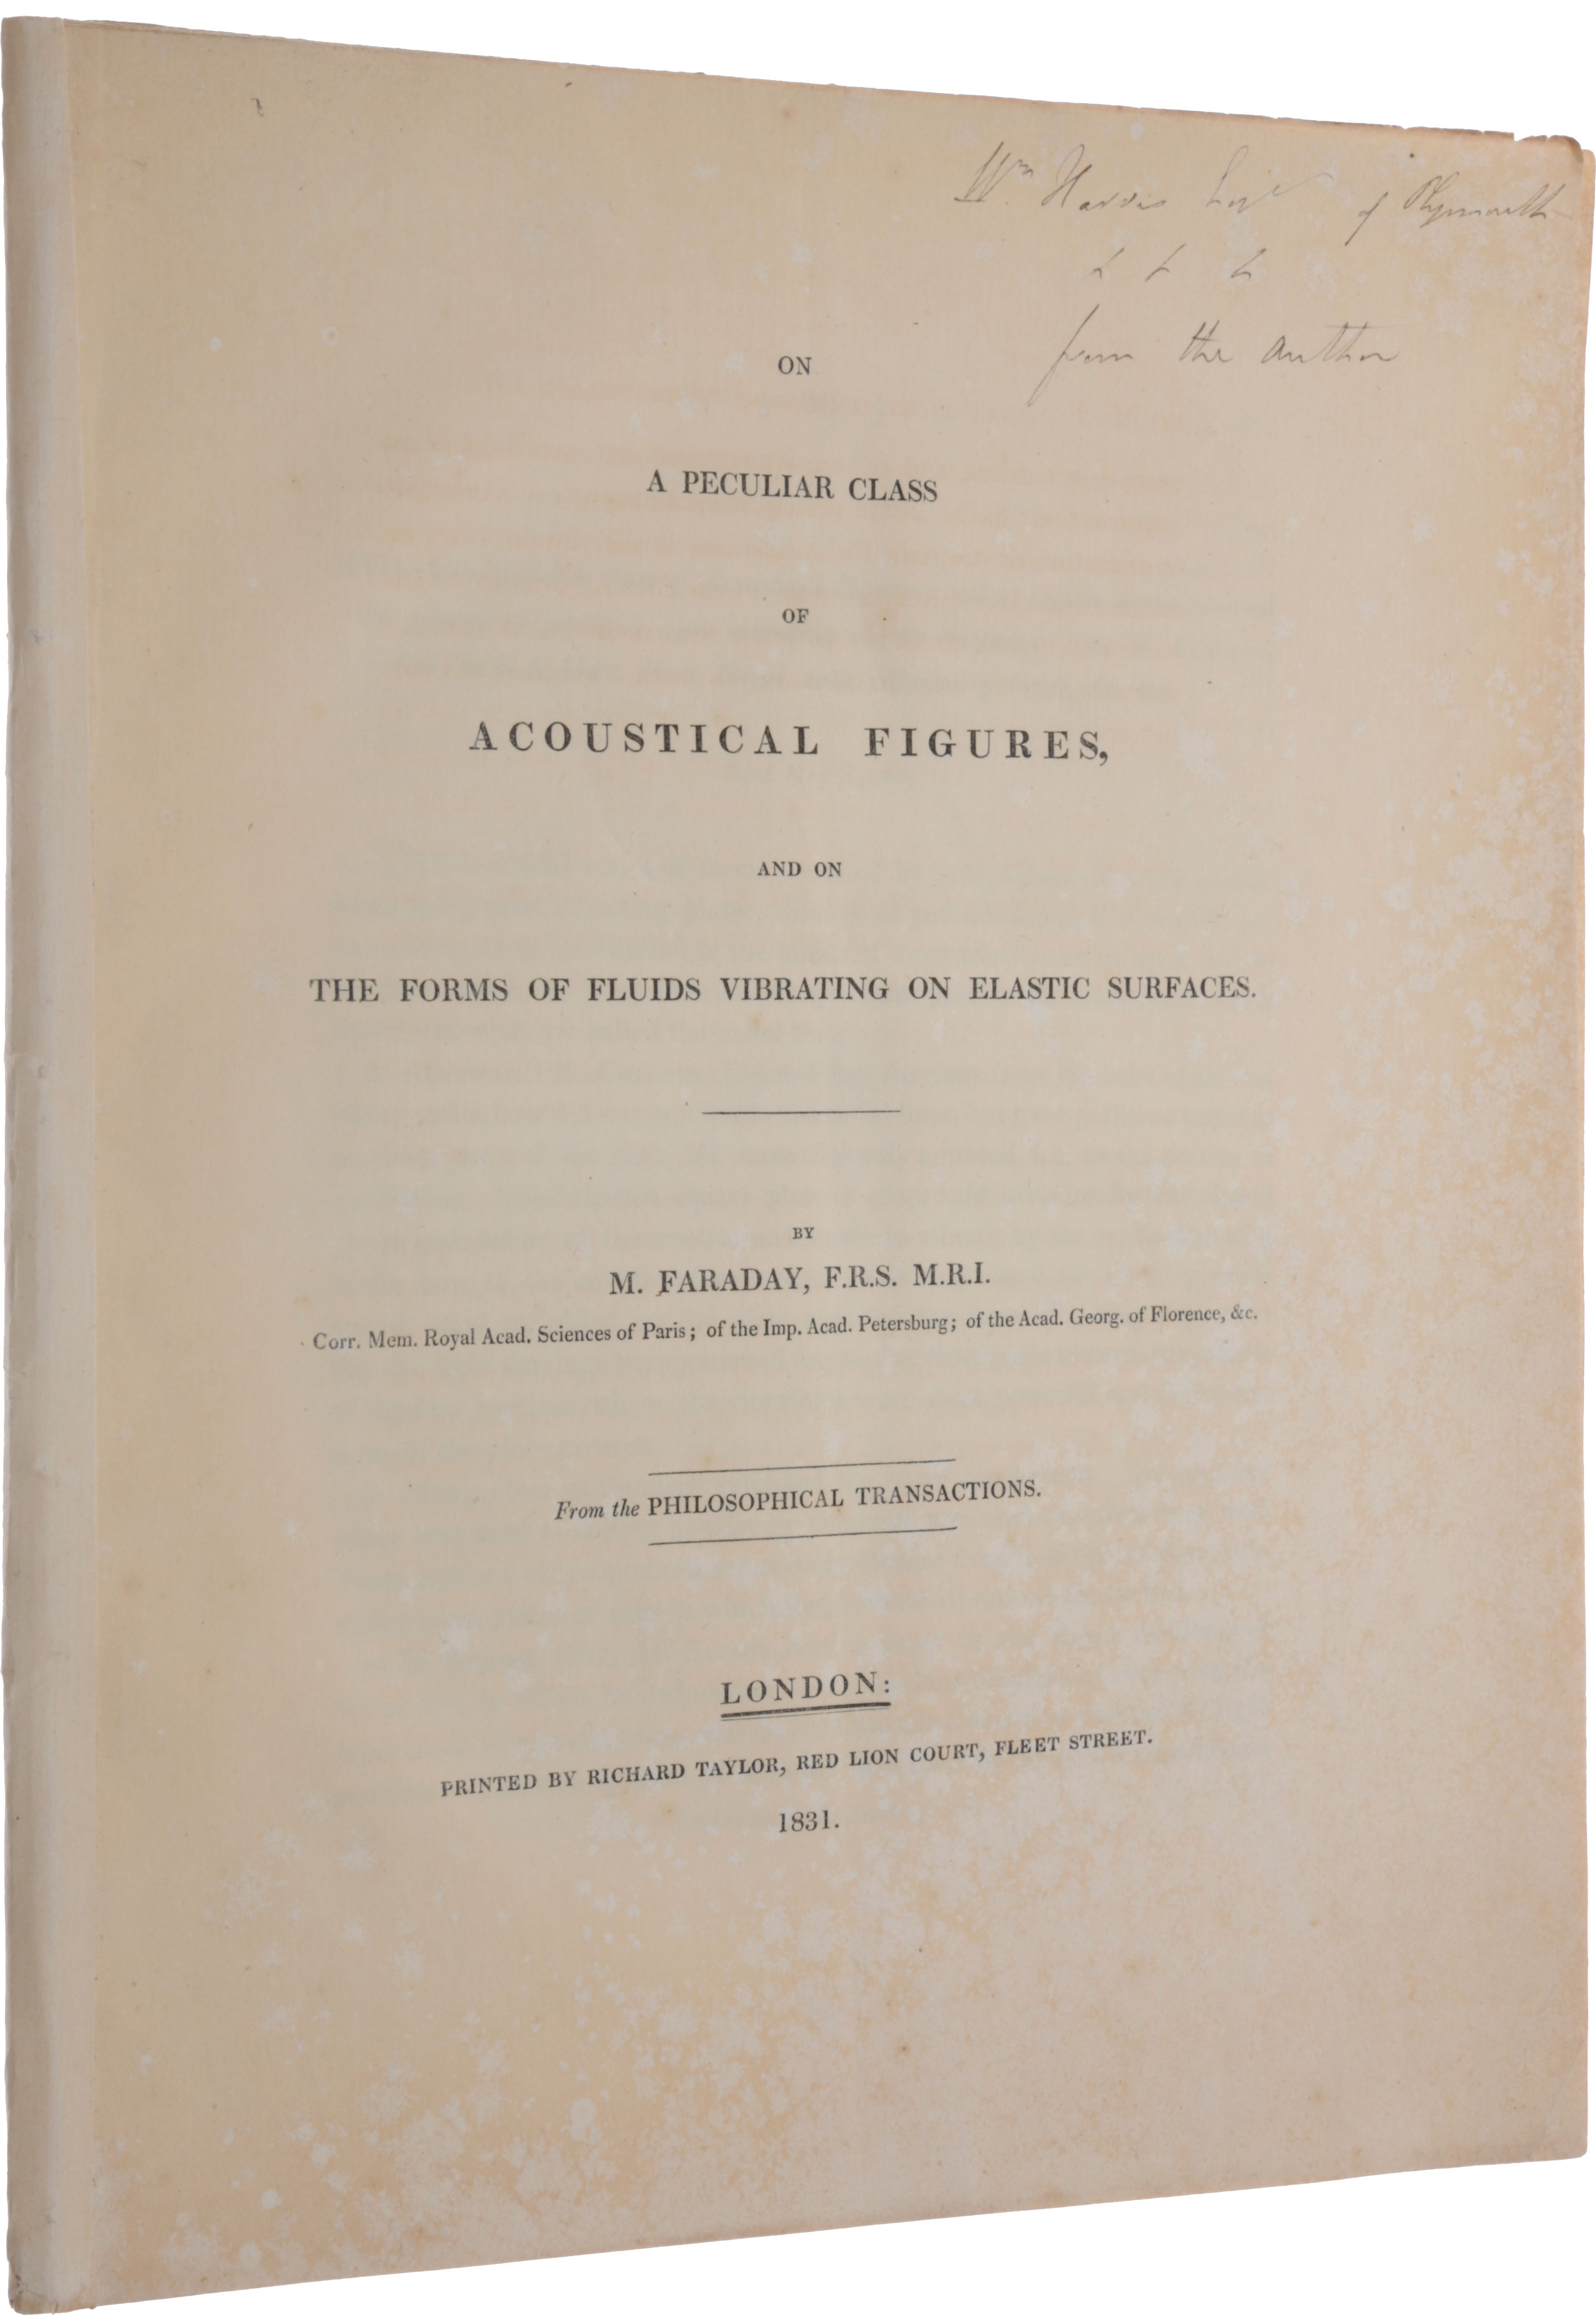 On a peculiar class of acoustical figures and on the forms of fluids vibrating on elastic surfaces. Offprint from: Philosophical Transactions, Vol. 121. Read before the Royal Society May 12, 1831. Michael FARADAY.